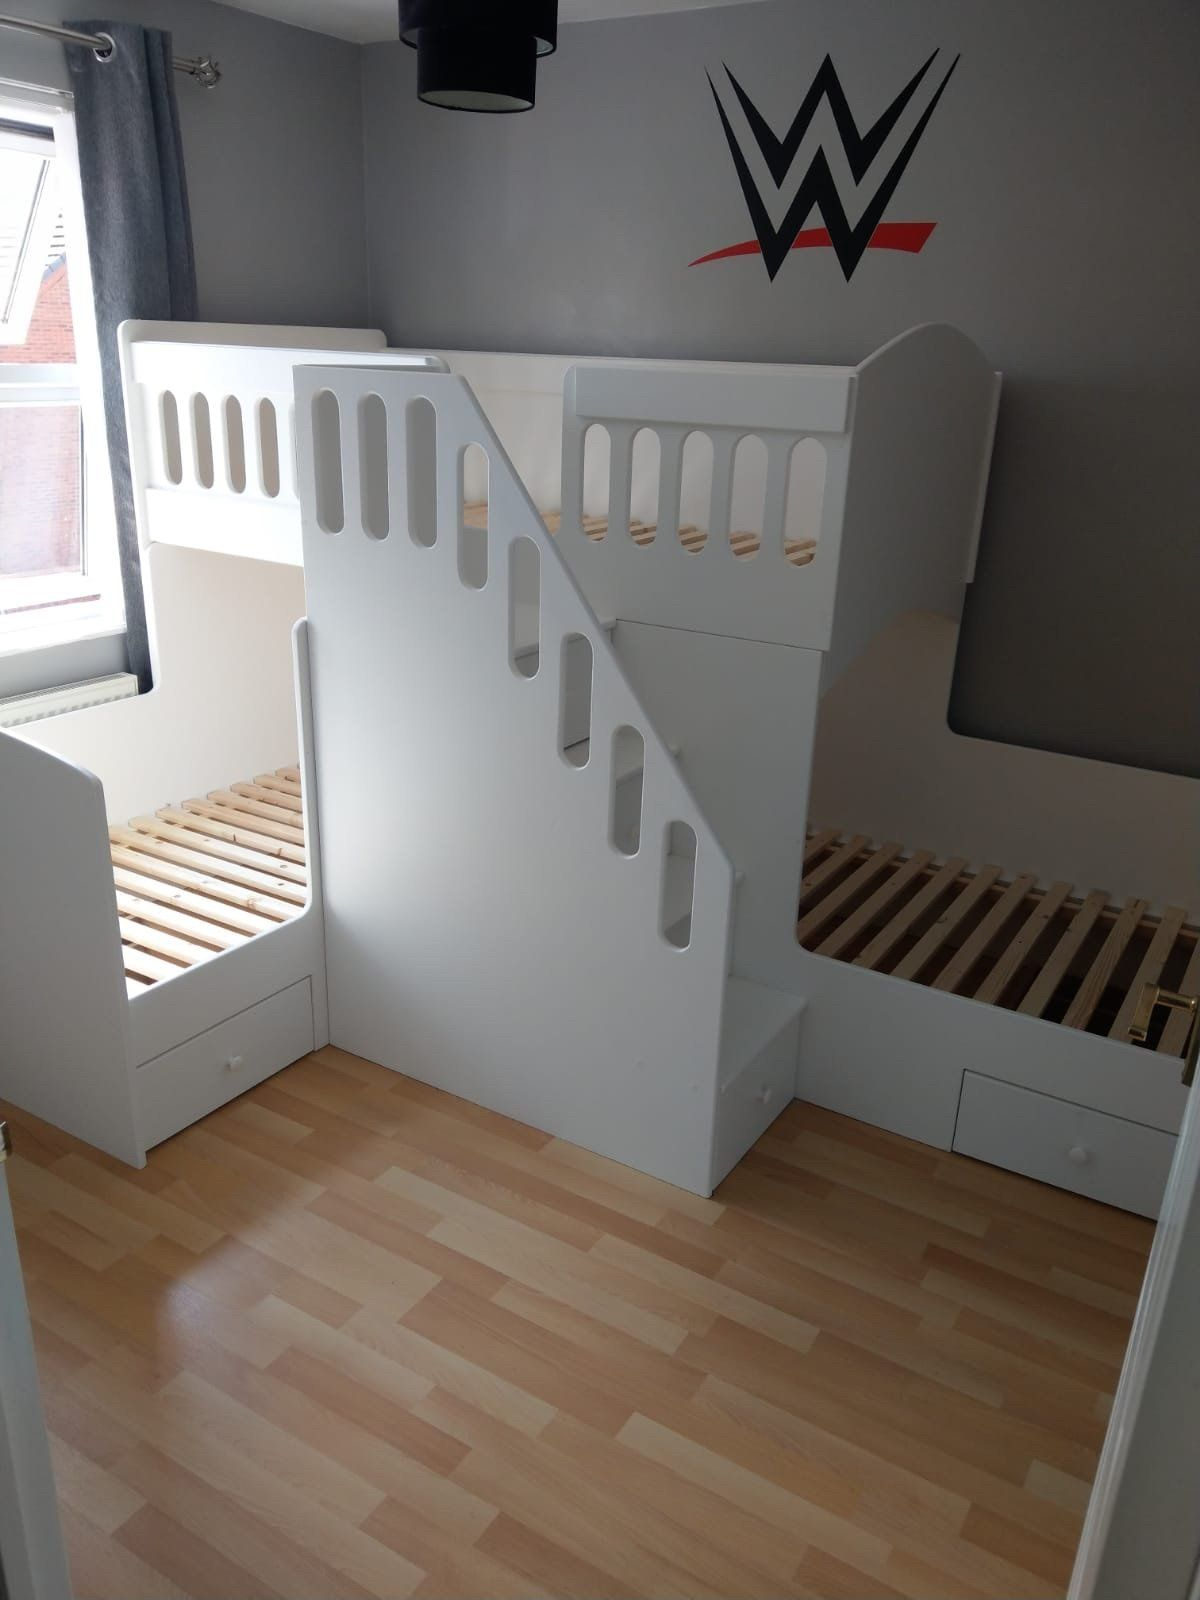 L Shaped Triple Bunk Bed in 2020 Triple bunk bed